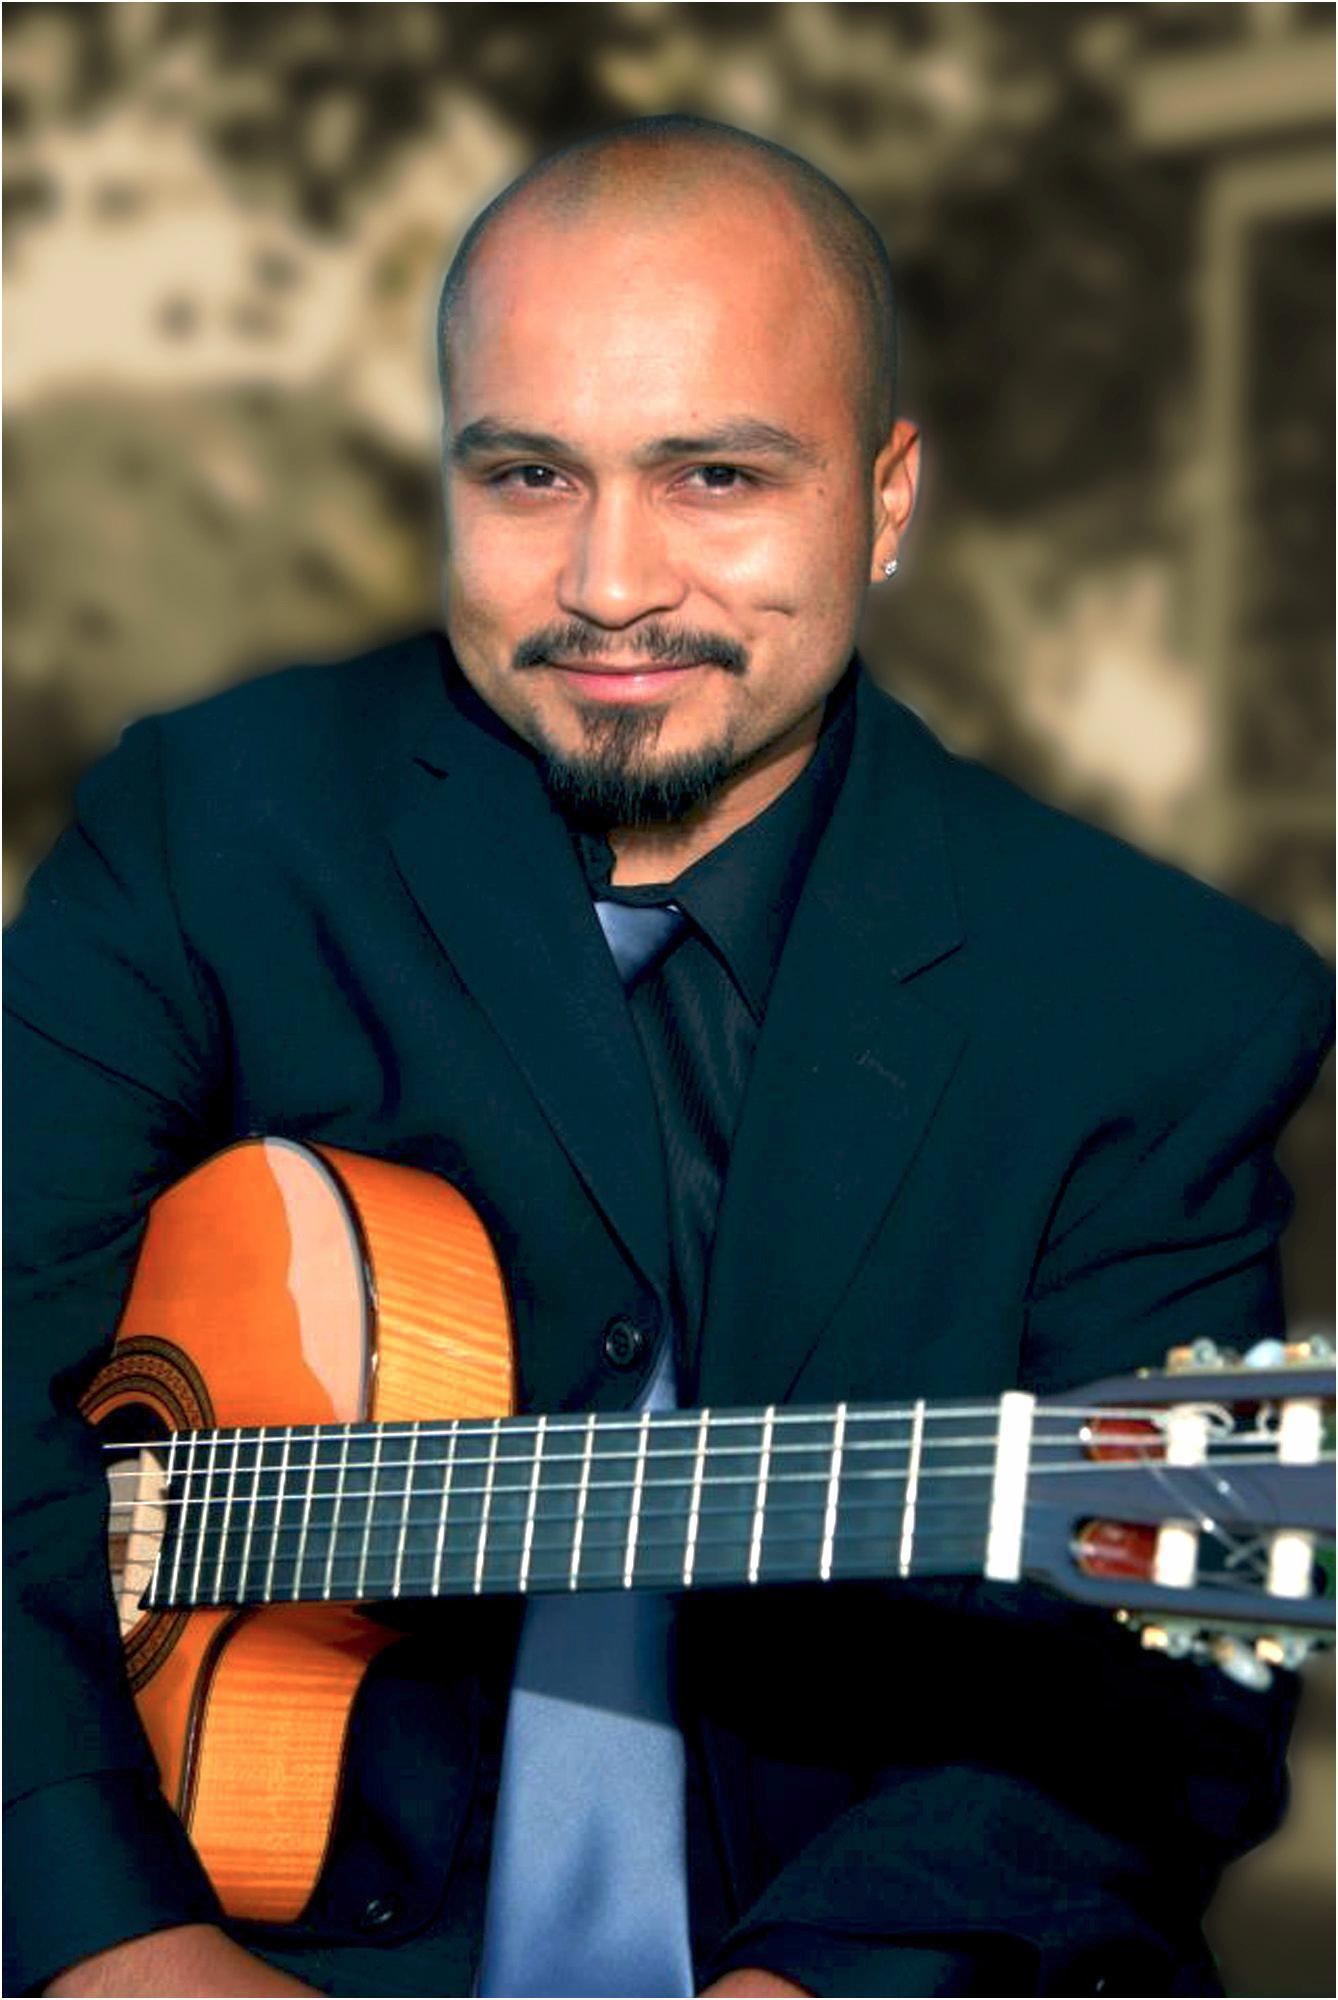 Rico Espinoza provides Spanish guitar music for weddings in Los Angeles and southern California